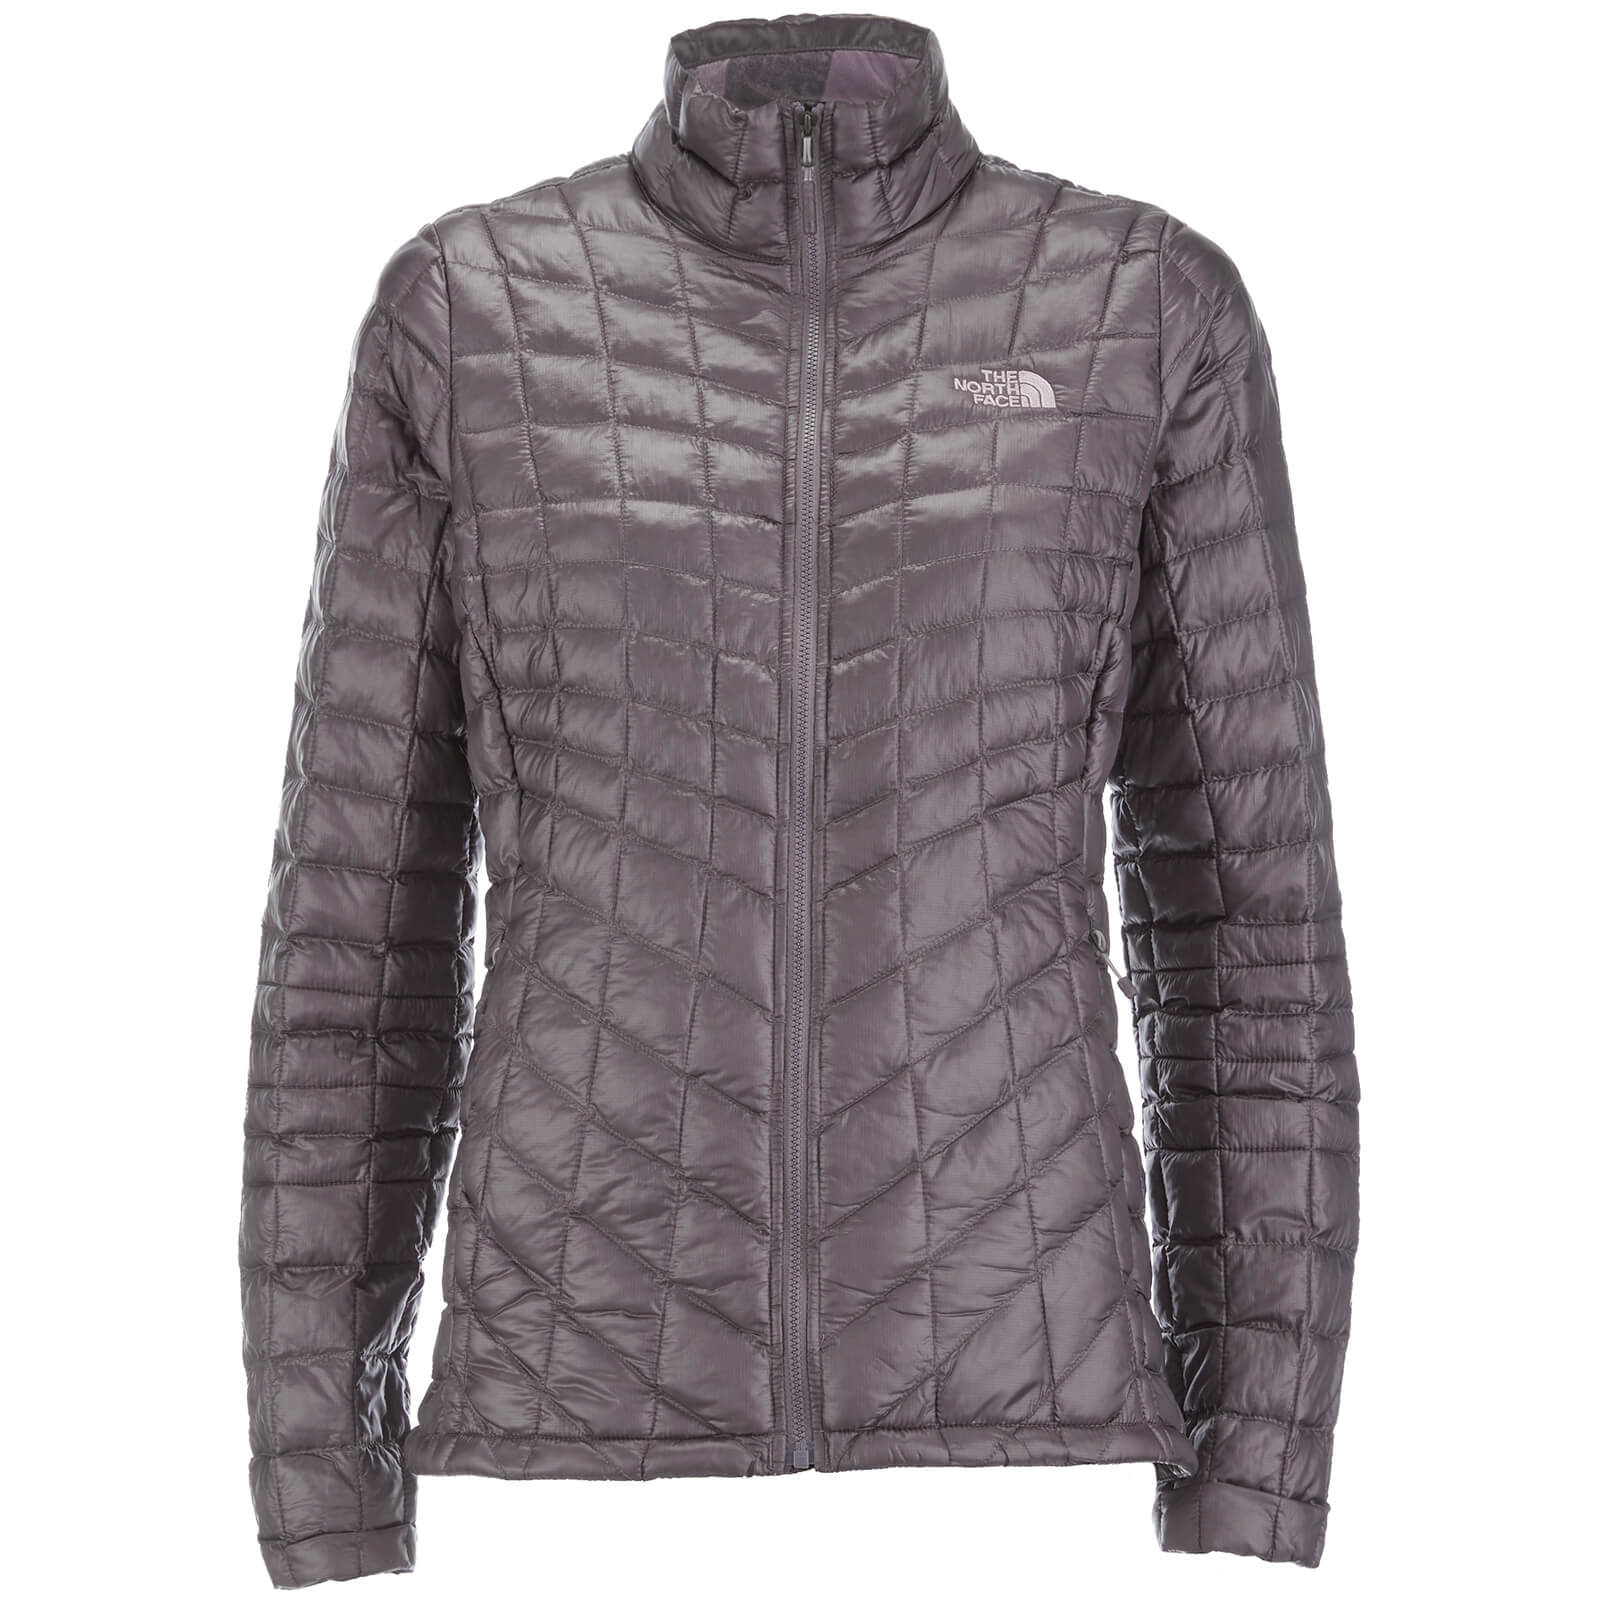 c28c497e809 ... The North Face Women's ThermoBall™ Full Zip Jacket - Rabbit Grey